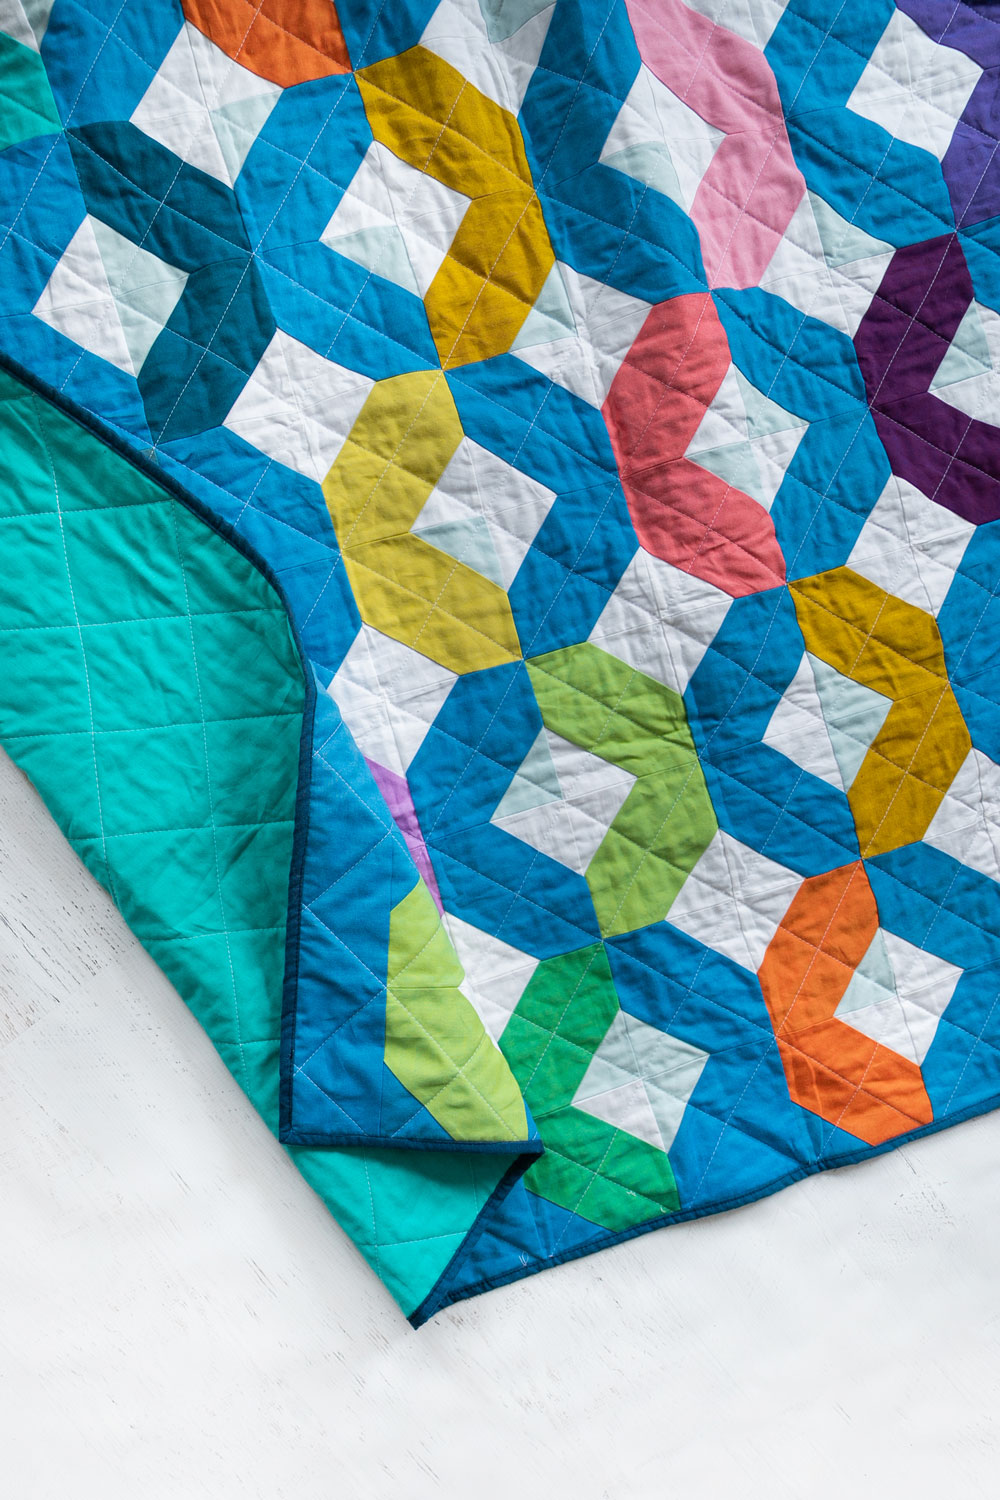 Make a Rainbow Quilt using this simple alteration to the Glitter & Glow quilt pattern. This is fat quarter friendly and great for newbie quilters and beginners. suzyquilts.com #rainbowquiltpattern